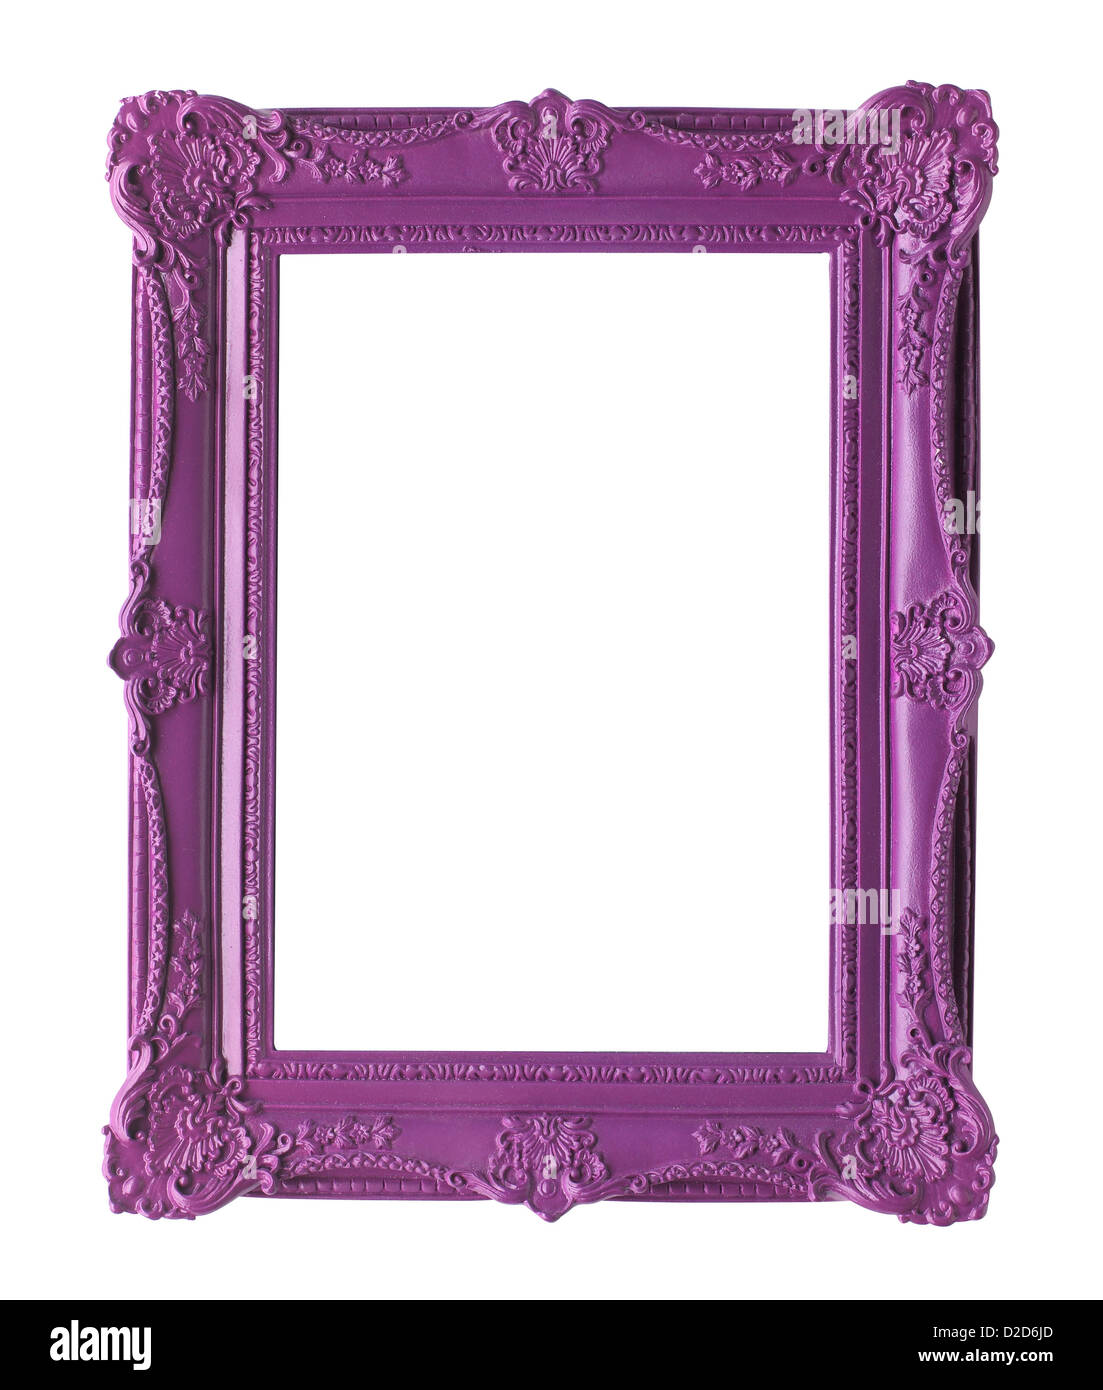 Empty picture frame cut out white background - Stock Image